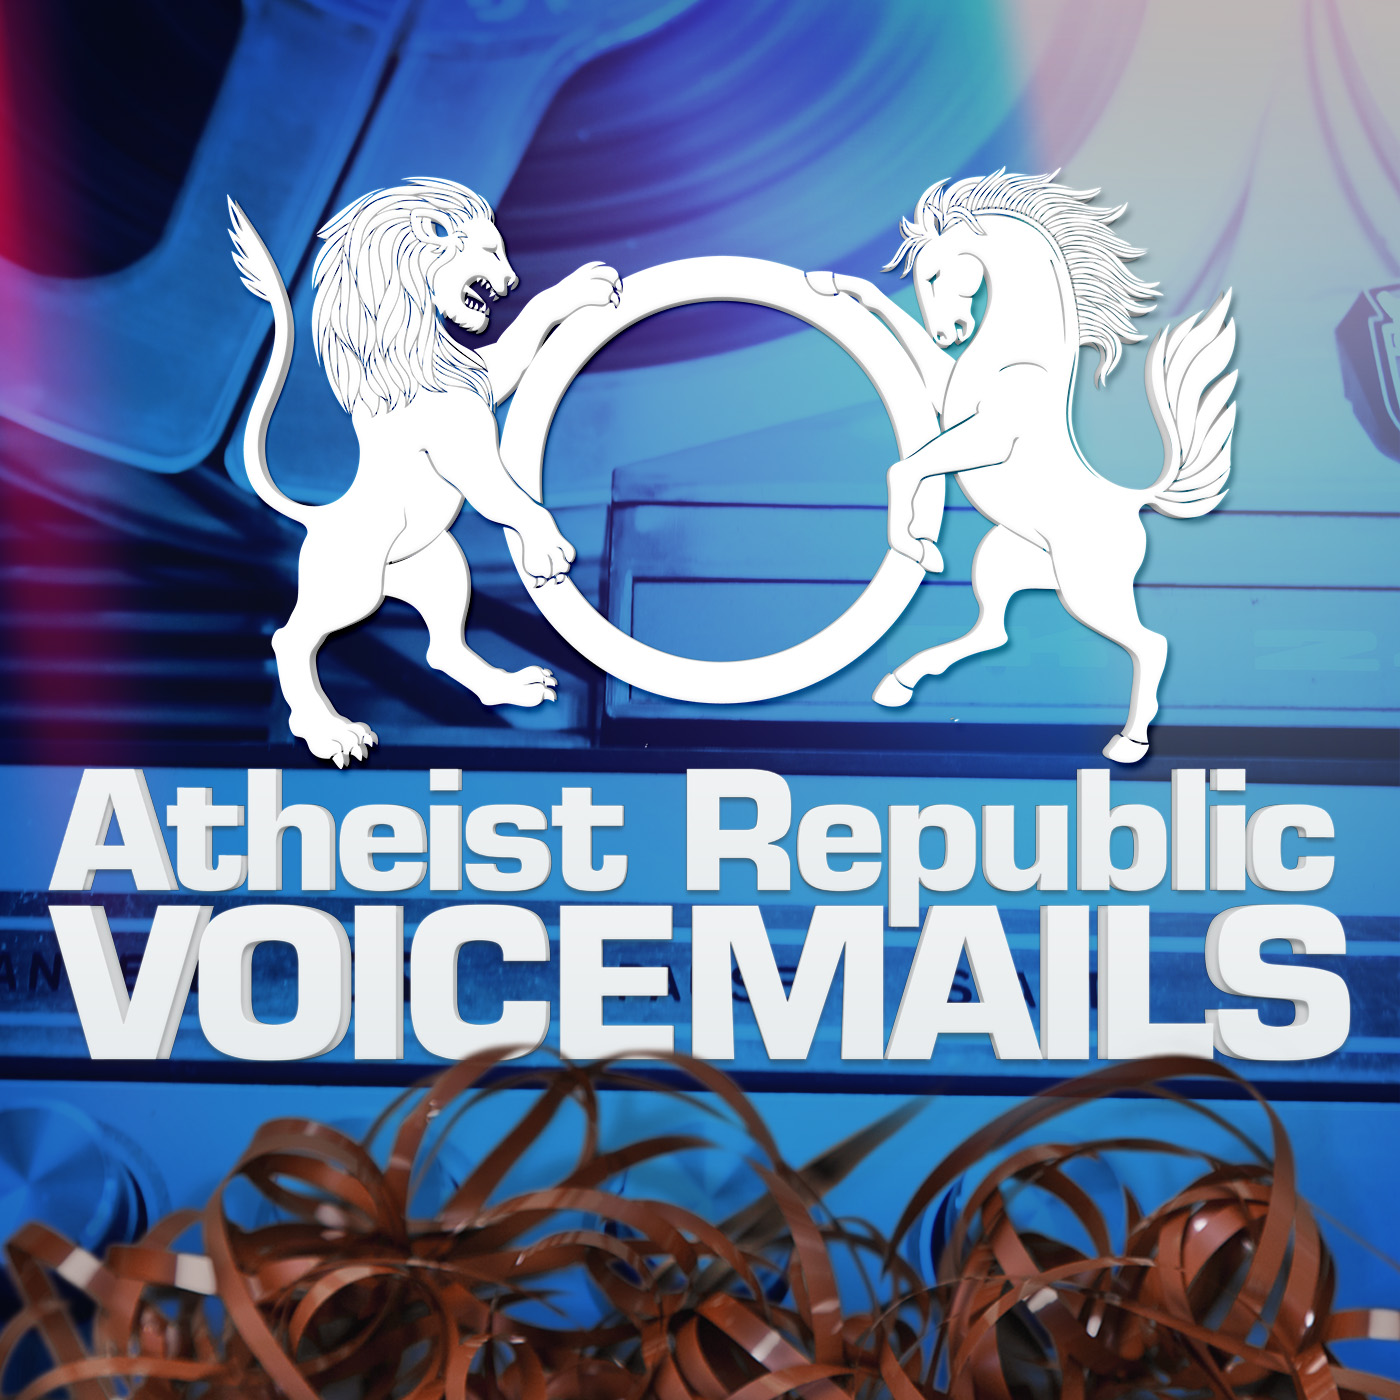 Atheist Republic Voicemails